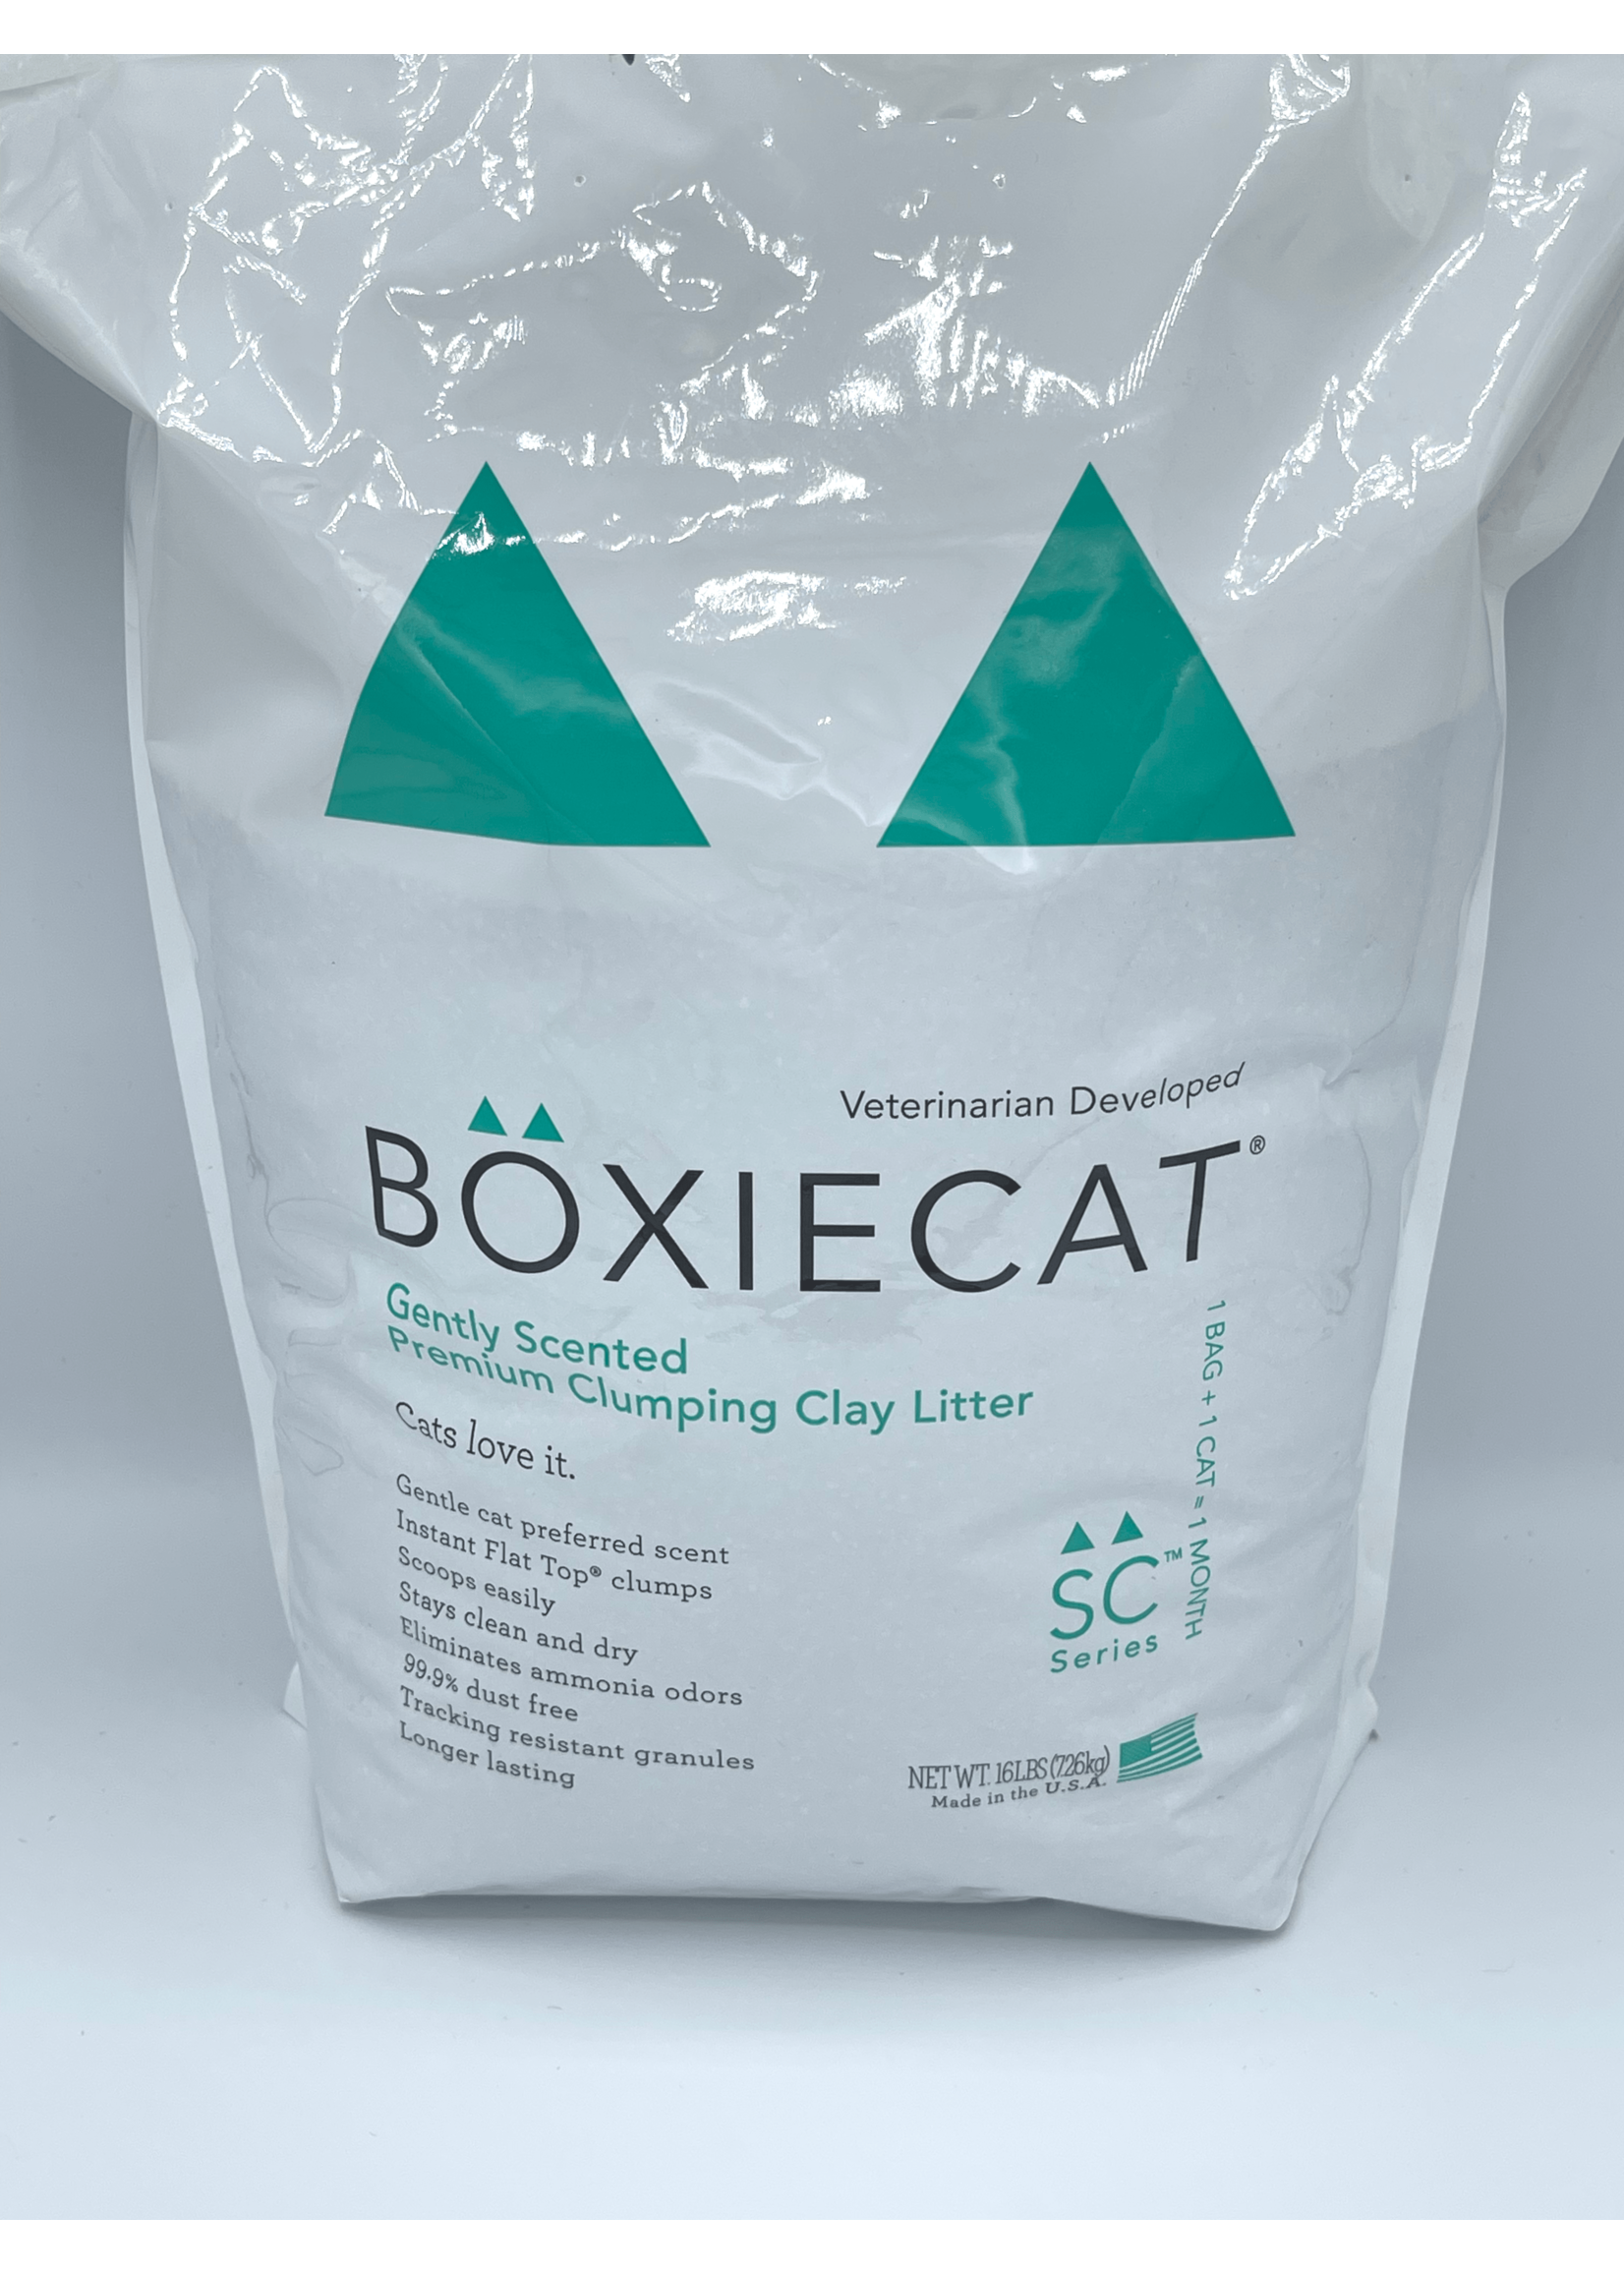 Boxie Cat Boxiecat Gently Scented Premium Clumping Litter